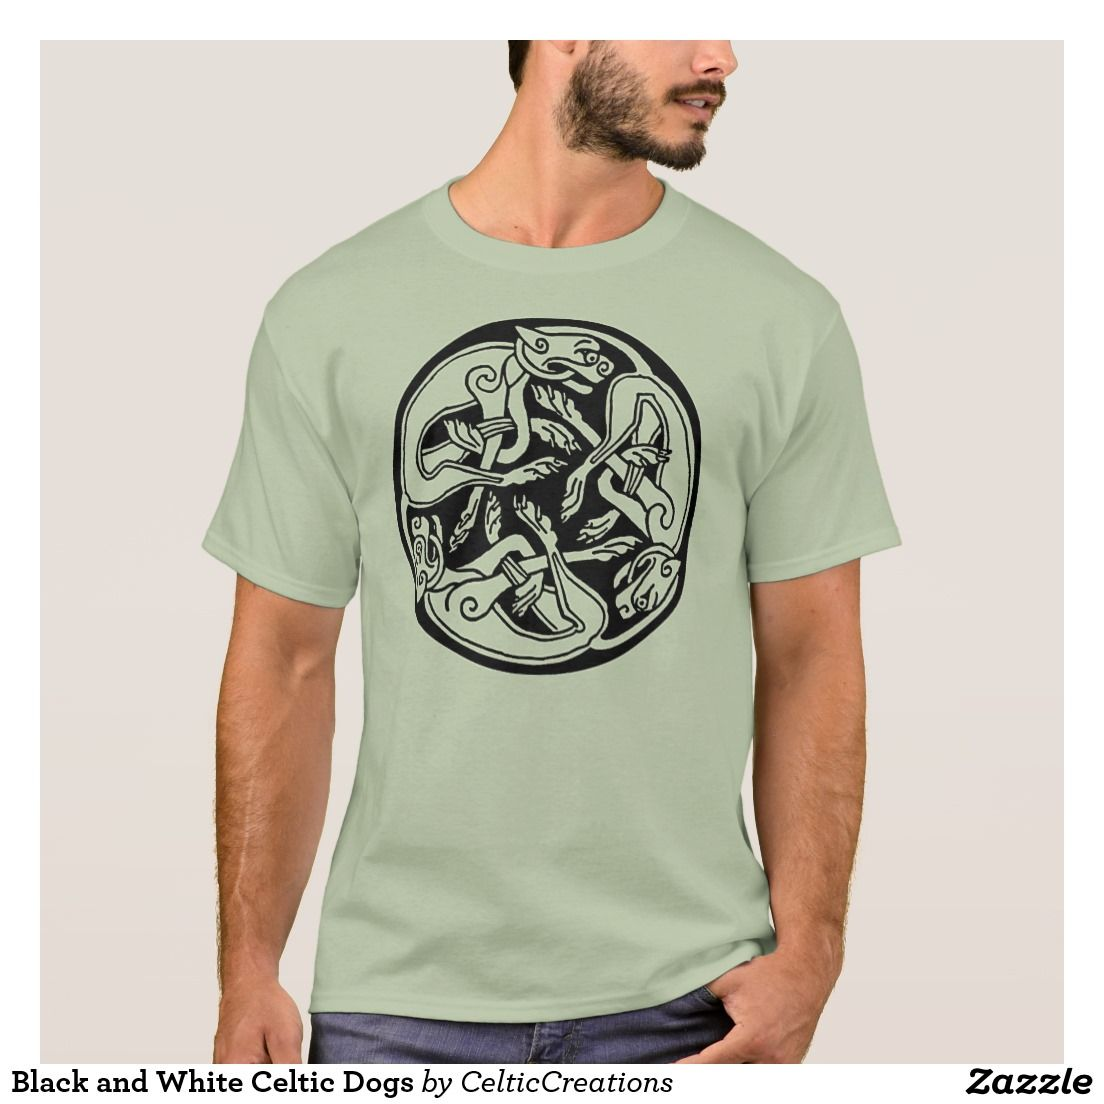 Black and White Celtic Dogs T-Shirt